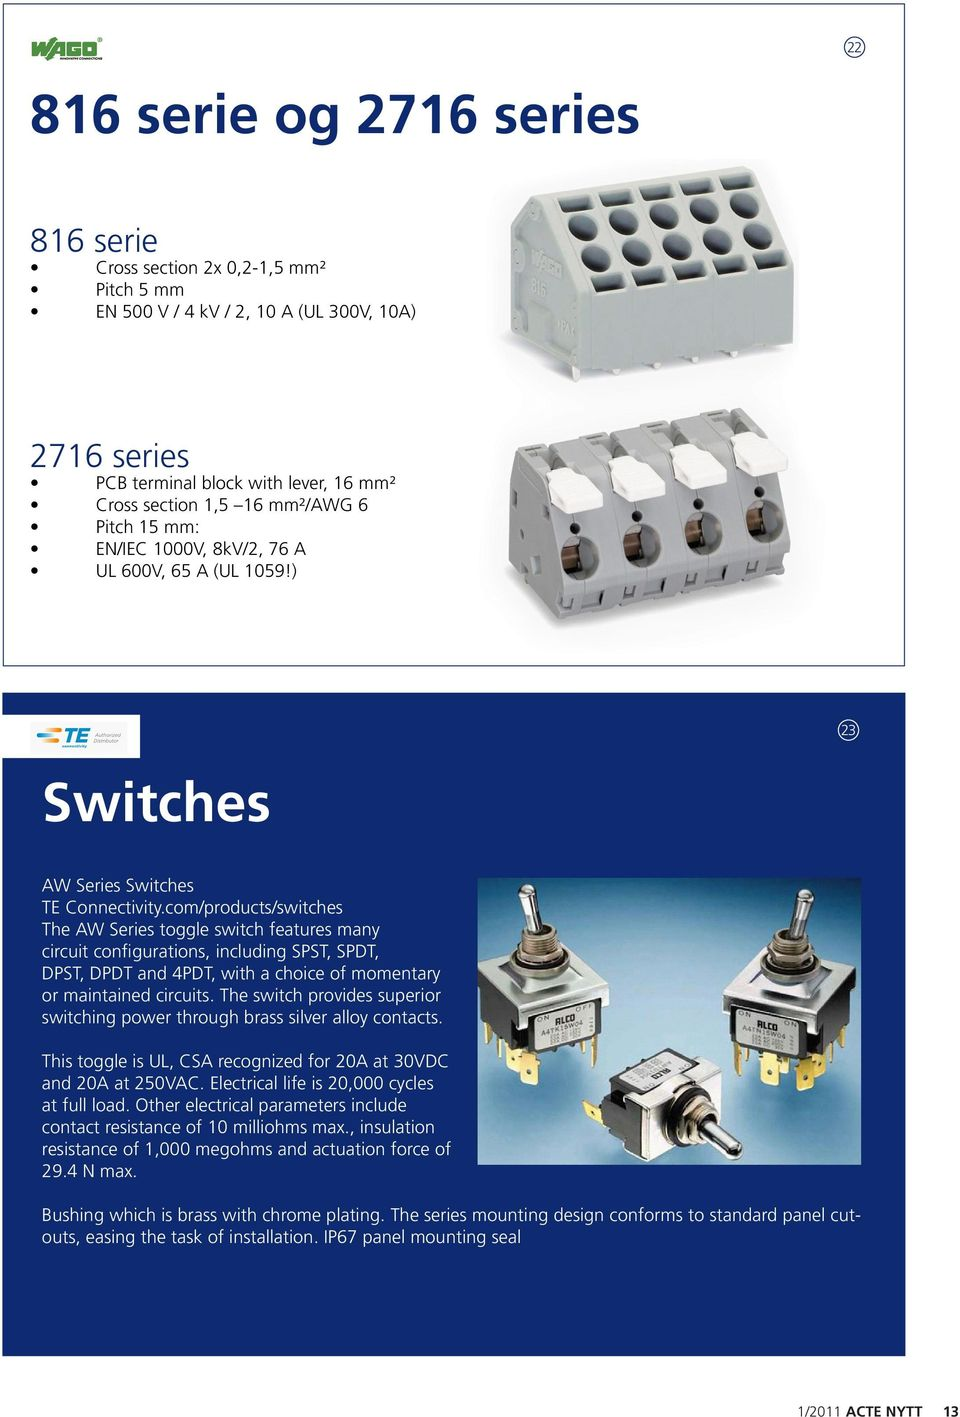 com/products/switches The AW Series toggle switch features many circuit configurations, including SPST, SPDT, DPST, DPDT and 4PDT, with a choice of momentary or maintained circuits.